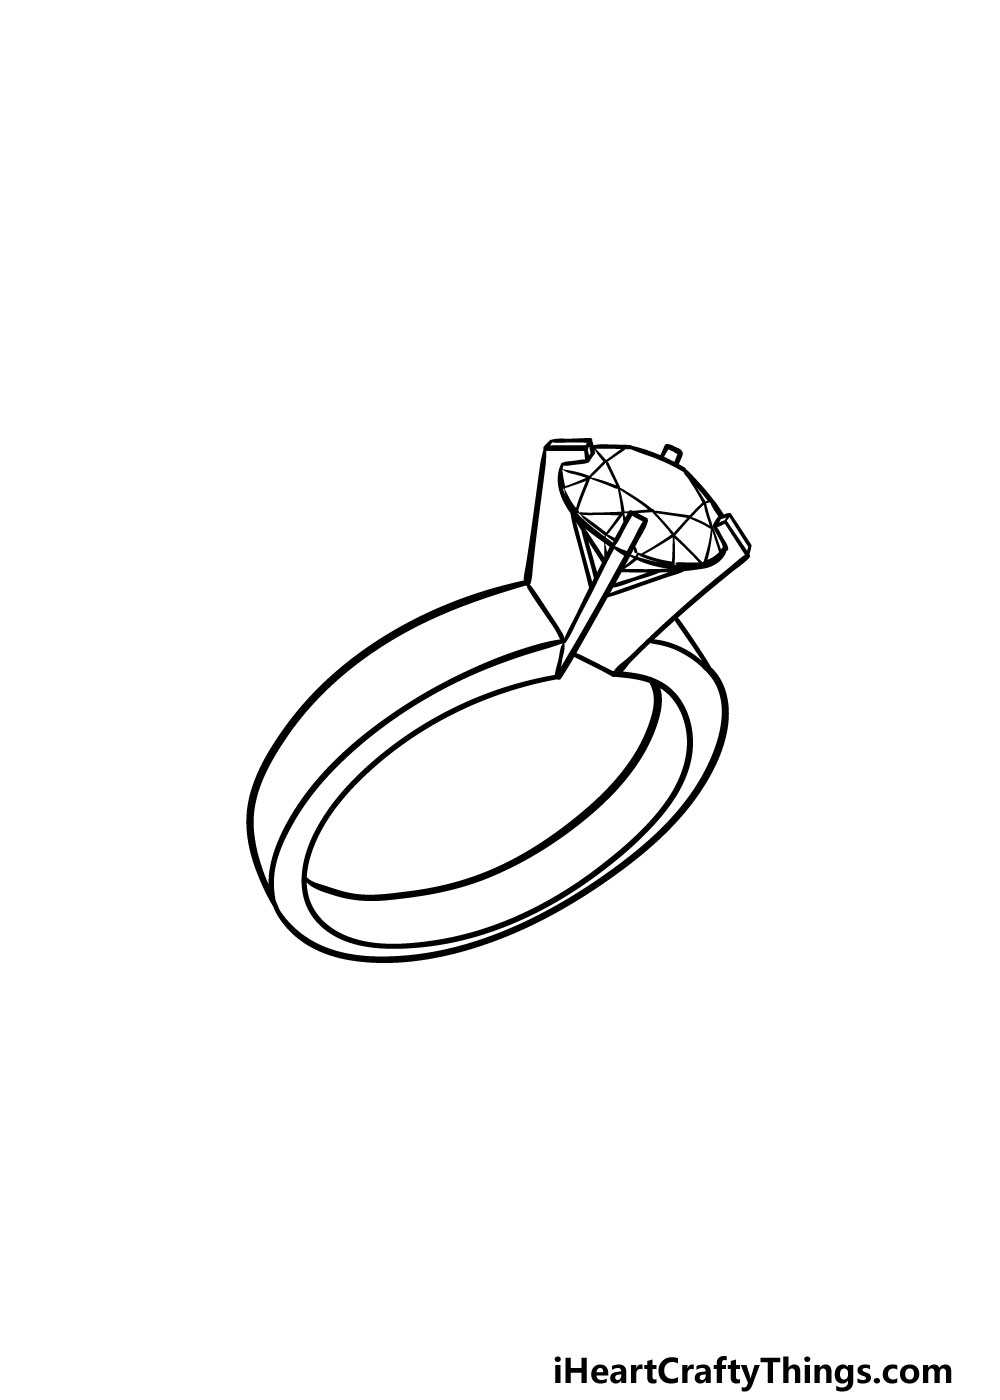 drawing a ring step 5